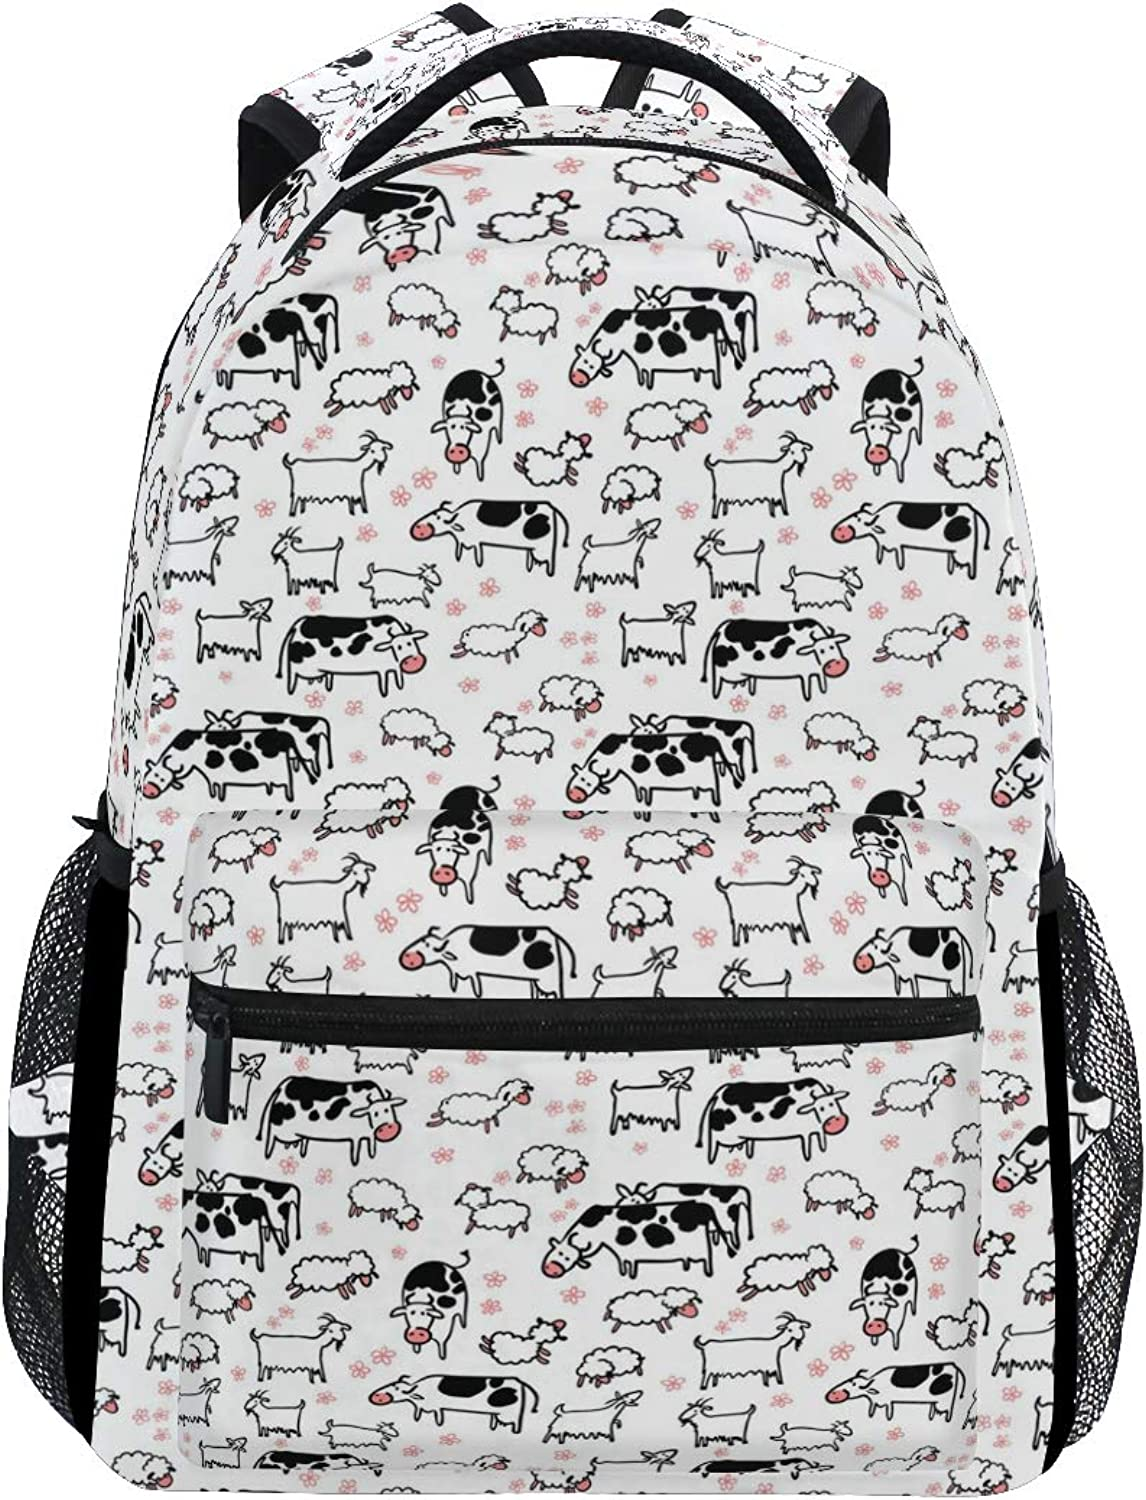 Funny Cows and Lambs Large Backpack Travel Outdoor Sports Laptop Backpack for Women & Men College School Water Resistant